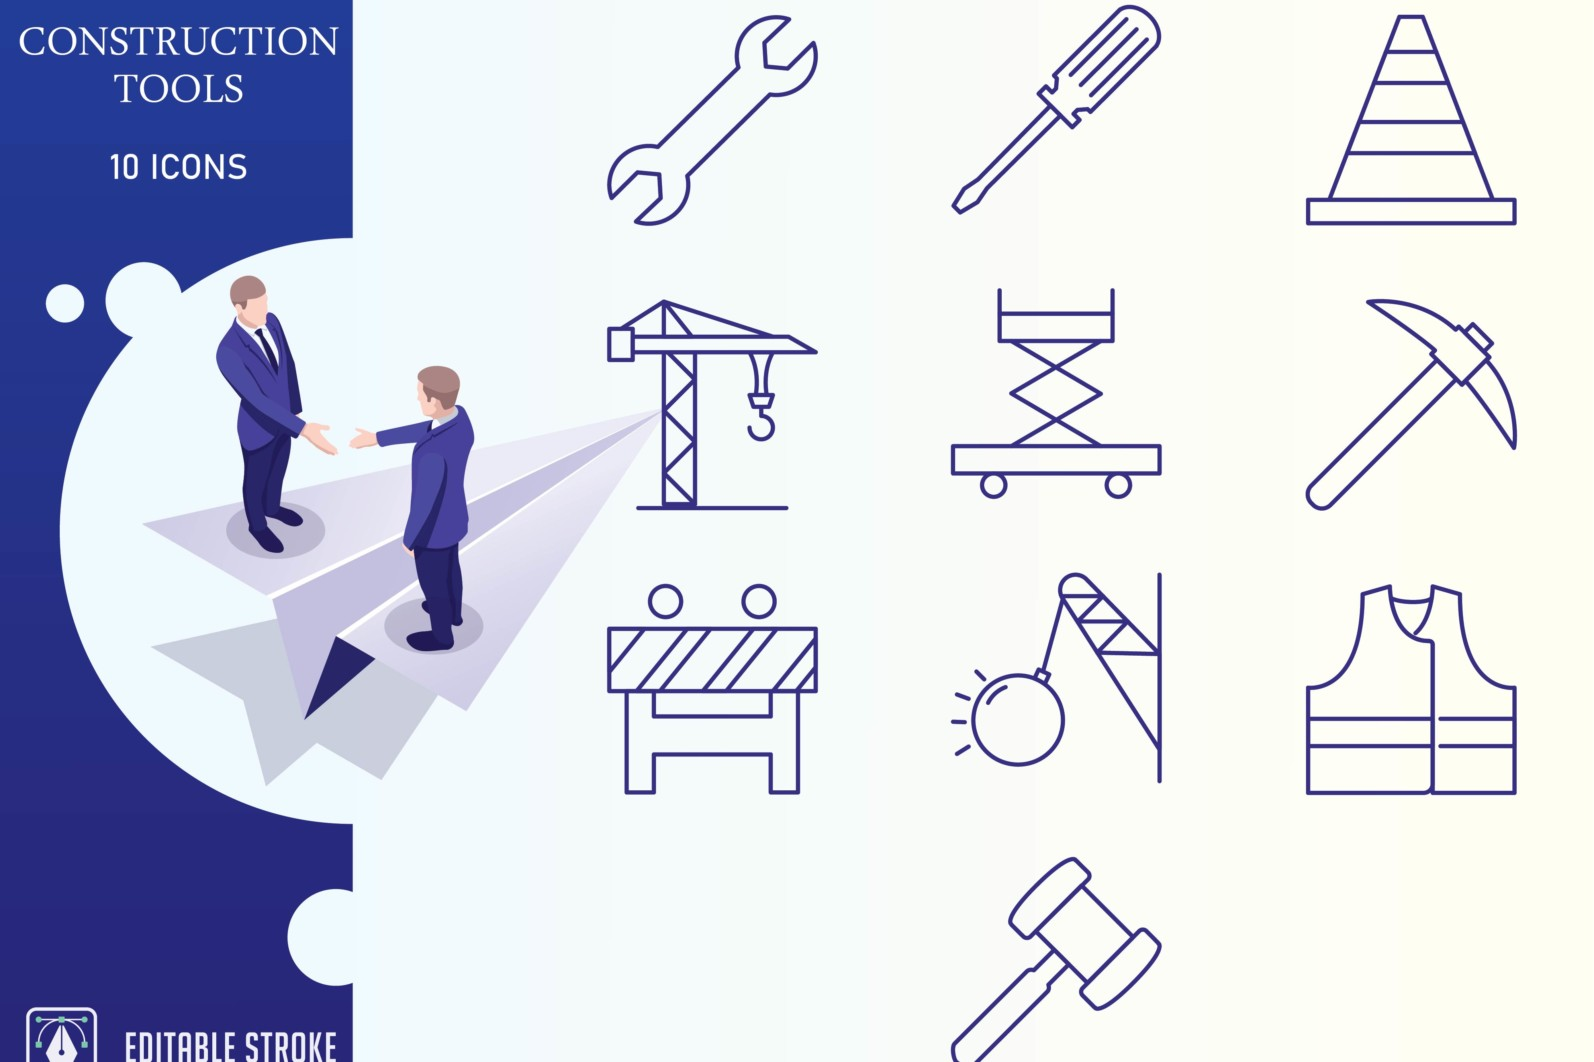 Outline : Tools Icon set - Tools Iconset outline 01 01 scaled -